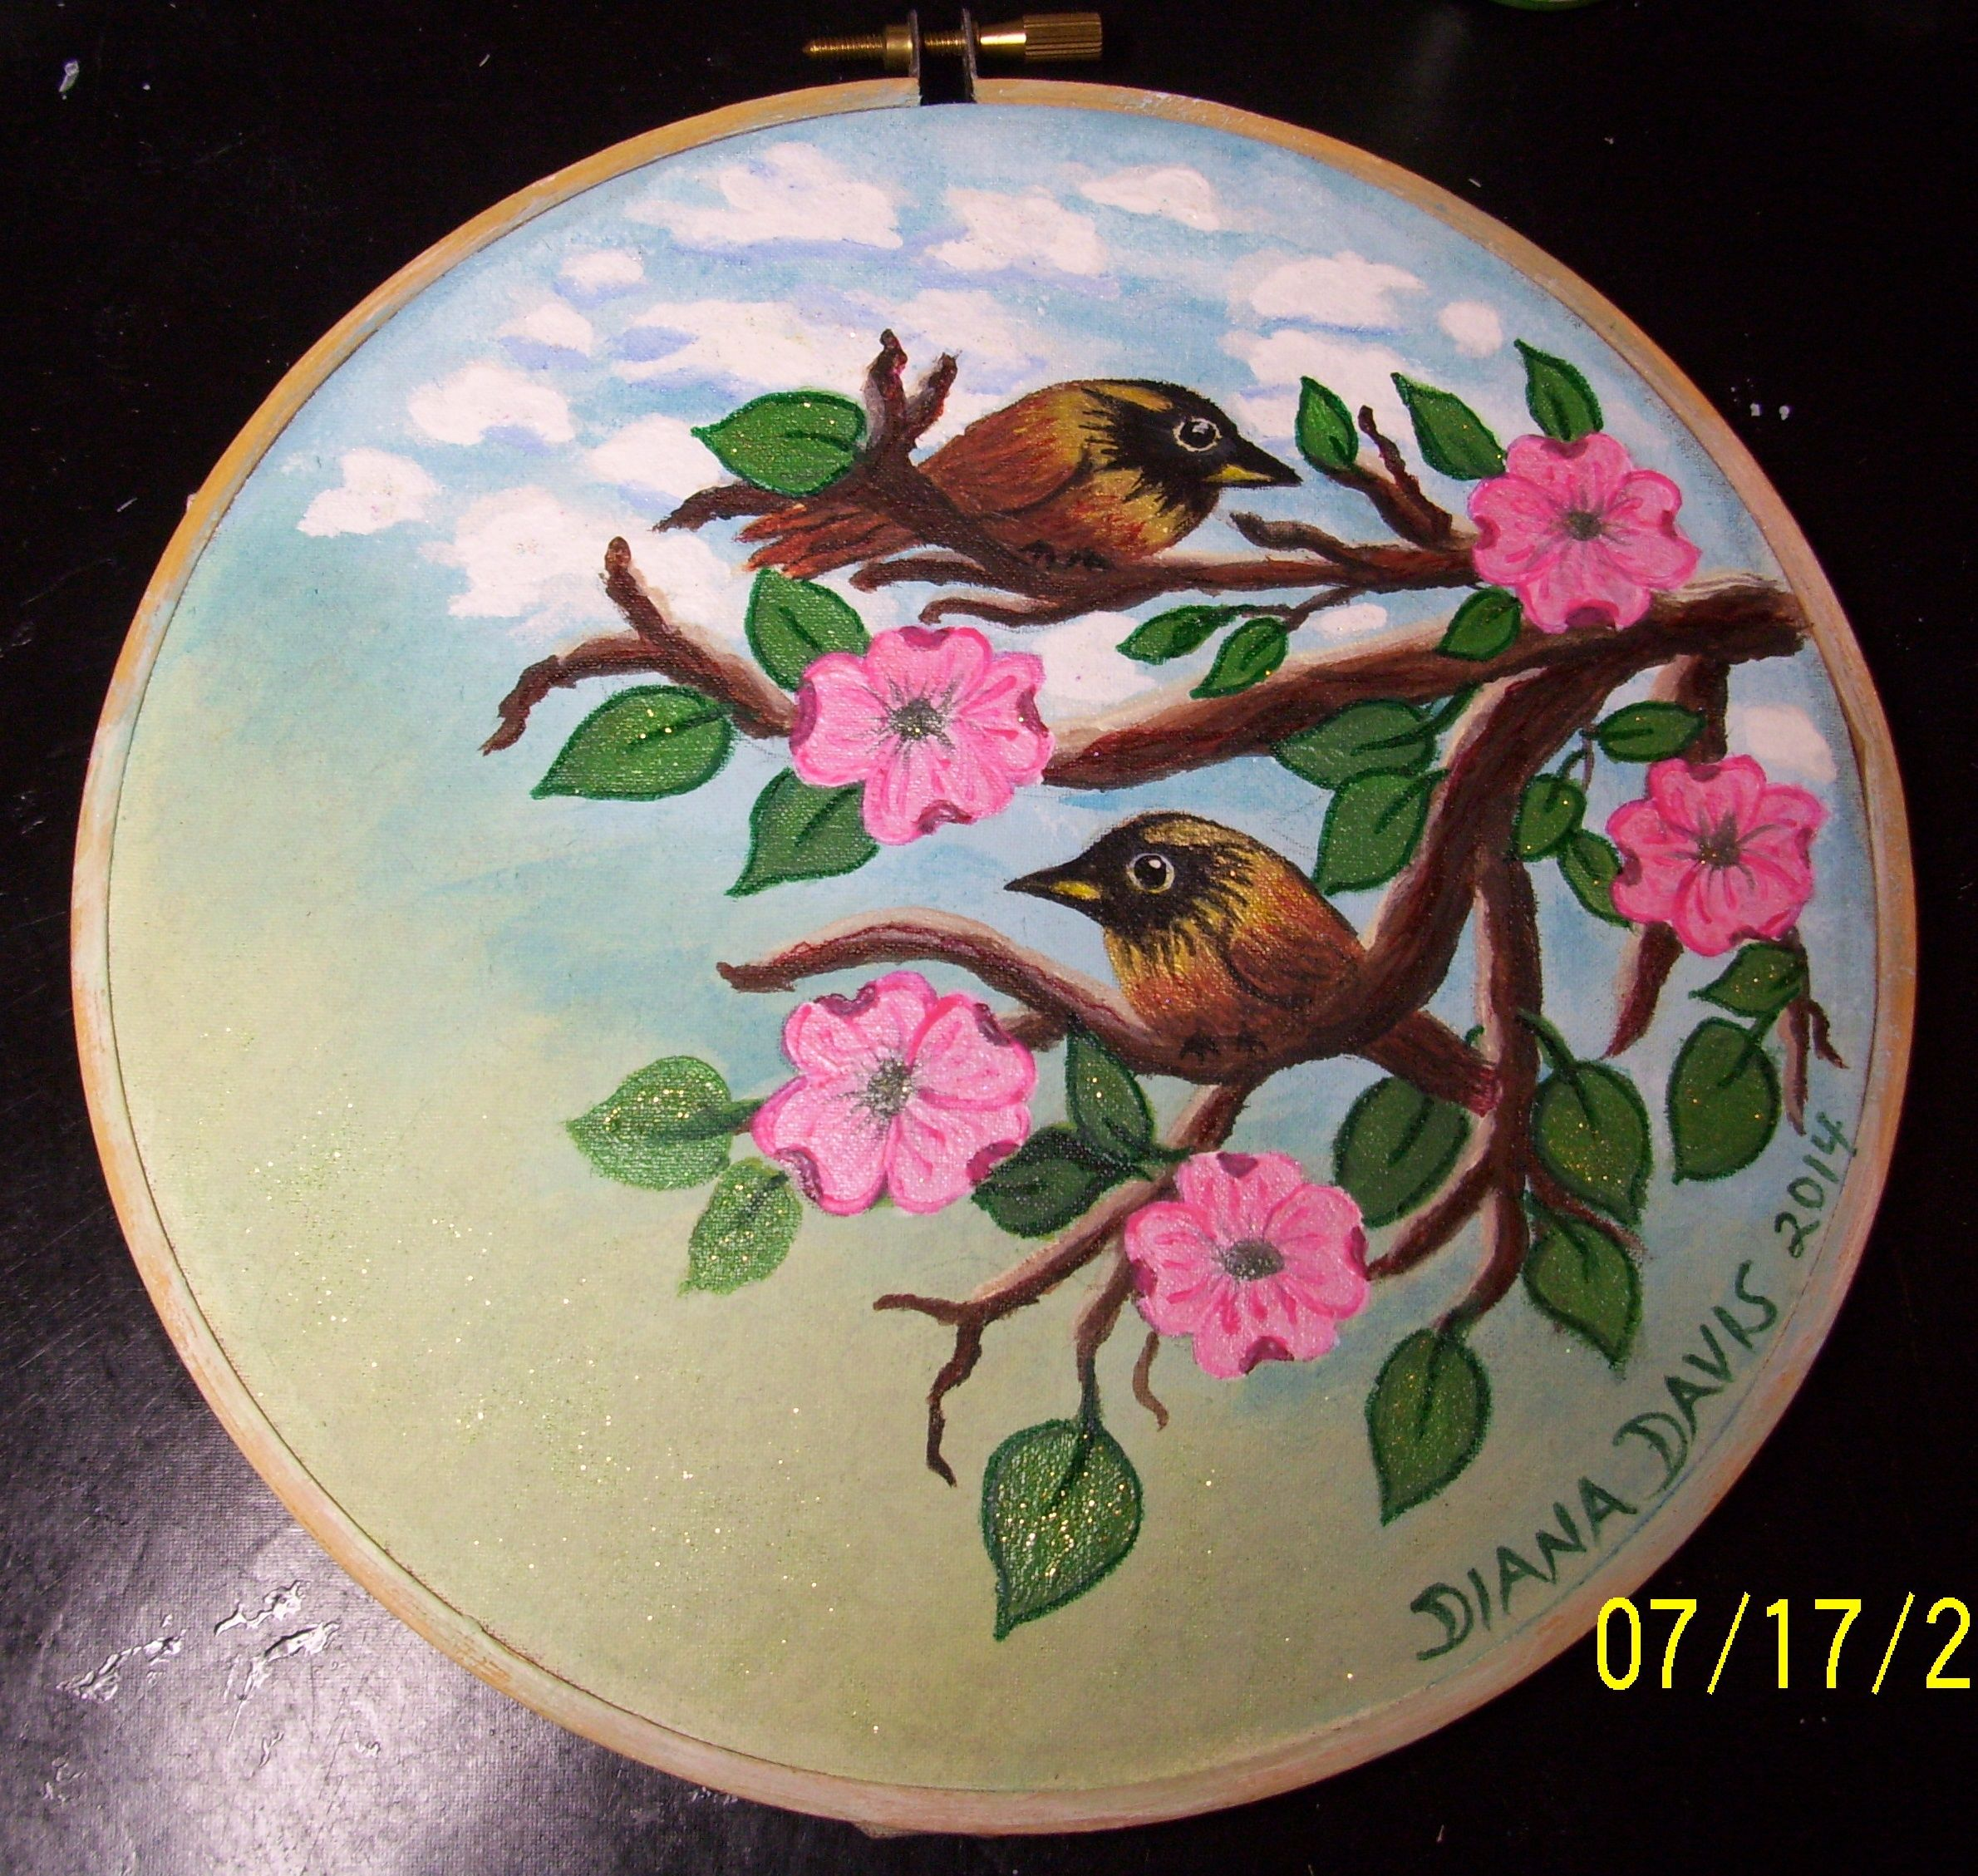 Wall hanging birds in dogwood tree done on fabric